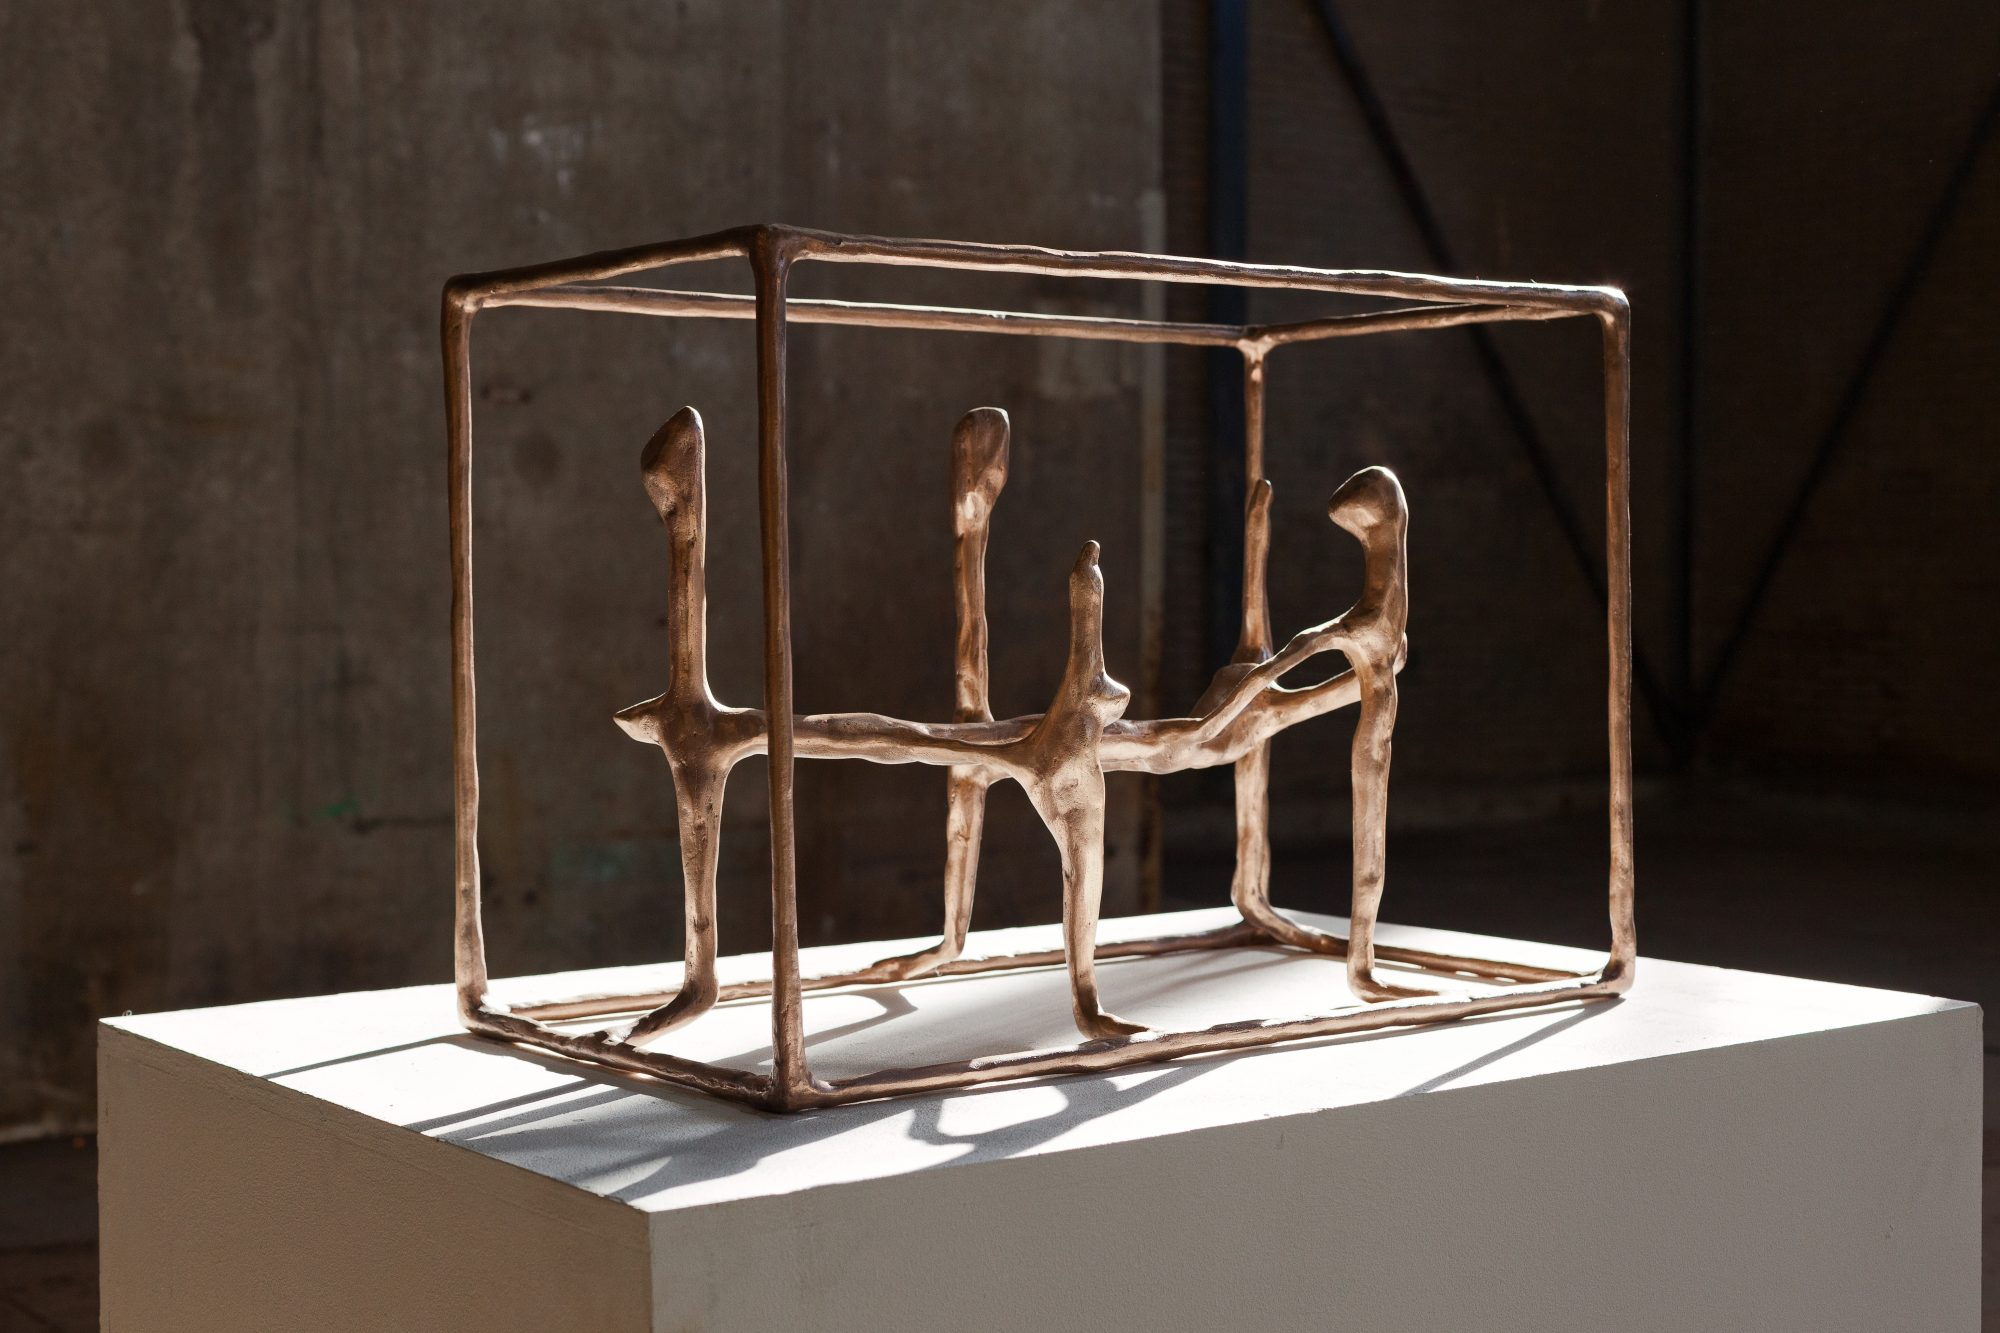 Upcoming Exhibition with Atelier Van Lieshout